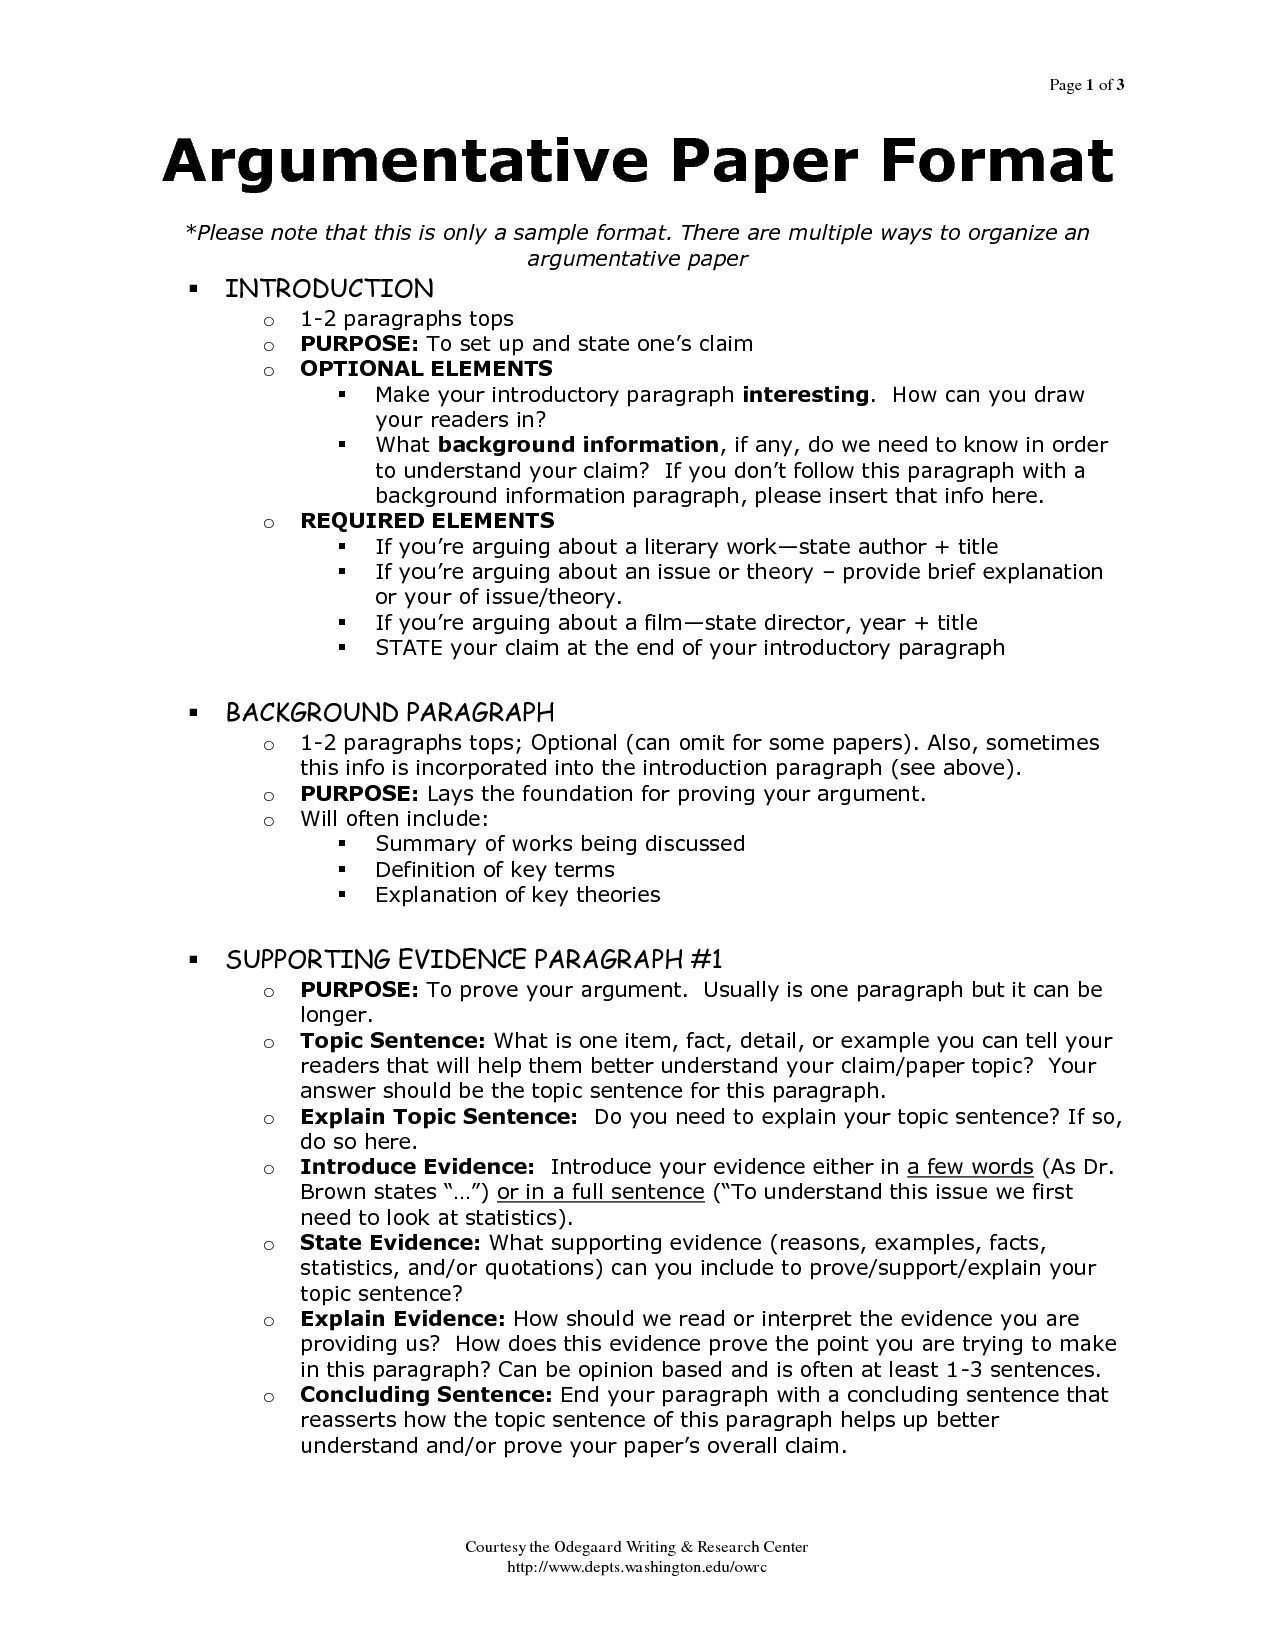 Outline Of Argumentative Essay Sample Google Search My Class Intended For Argumentative Essay Format 8t Expository Essay Essay Writing Essay Writing Skills